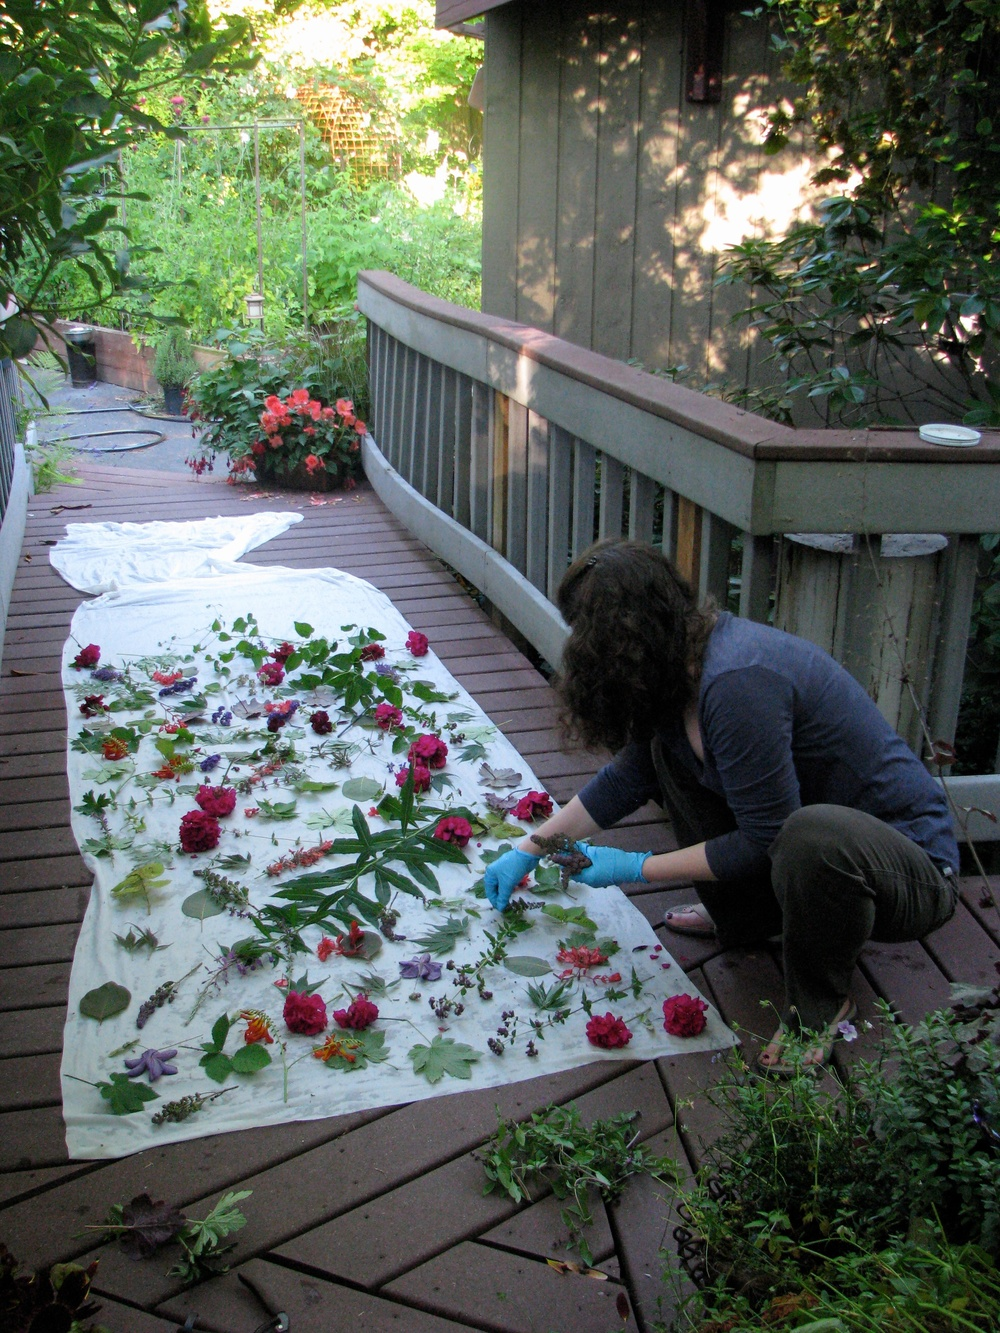 Laying out leaves and flowers to create botanical prints